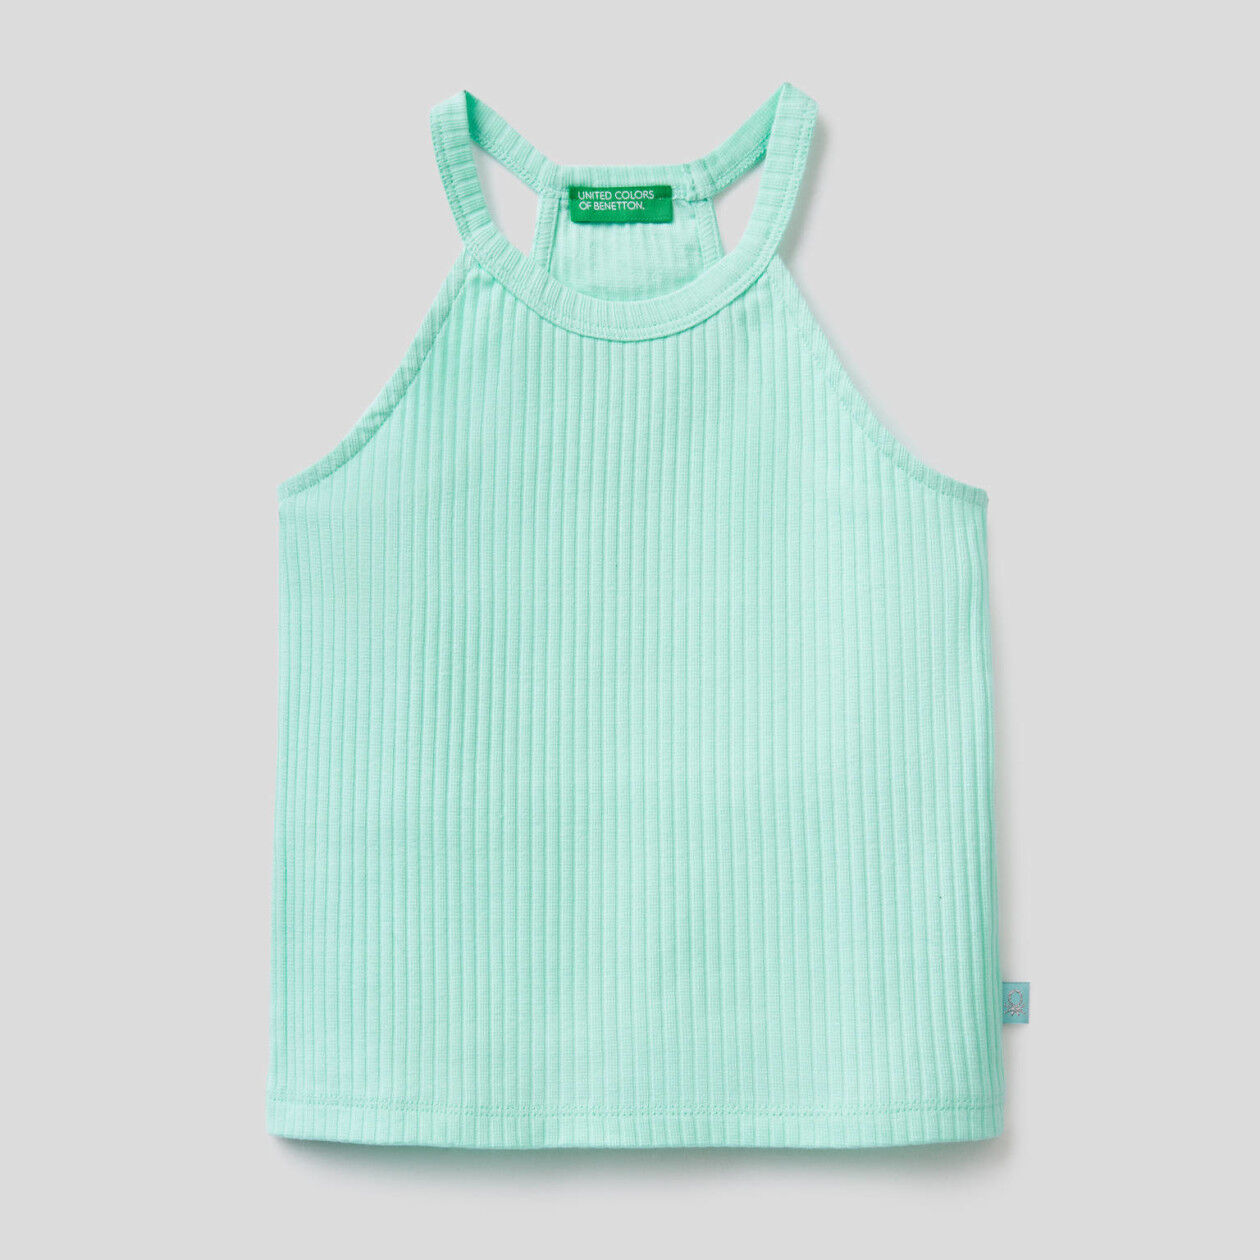 Sleeveless top in stretch cotton